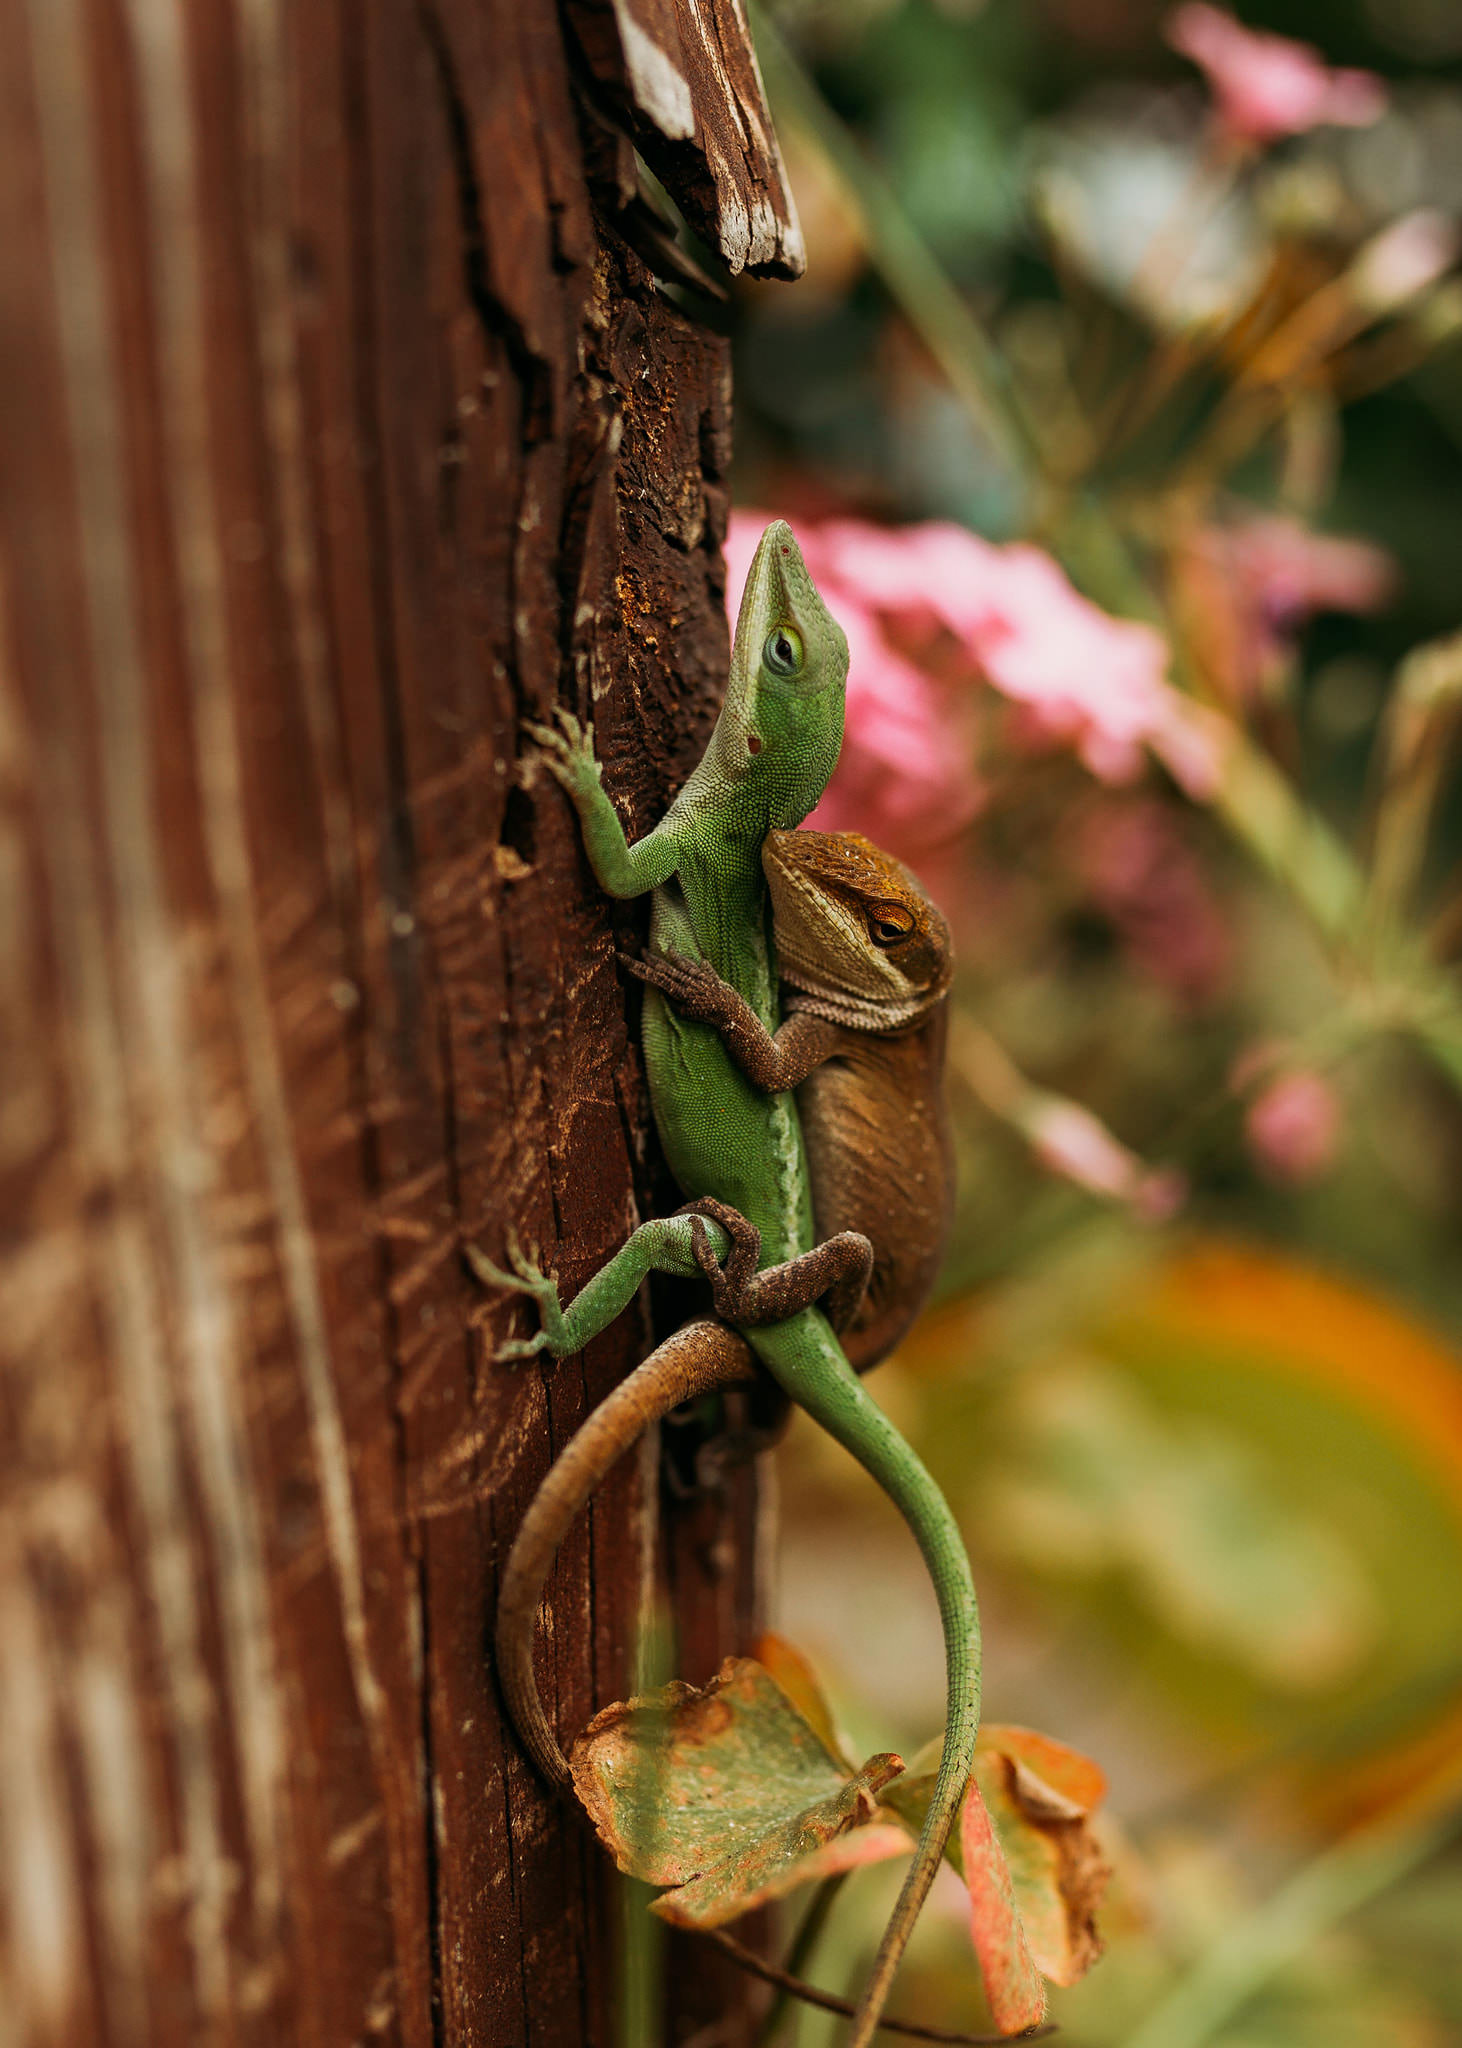 a green lizard climbs up a tree, while a brown lizard is on the green's back